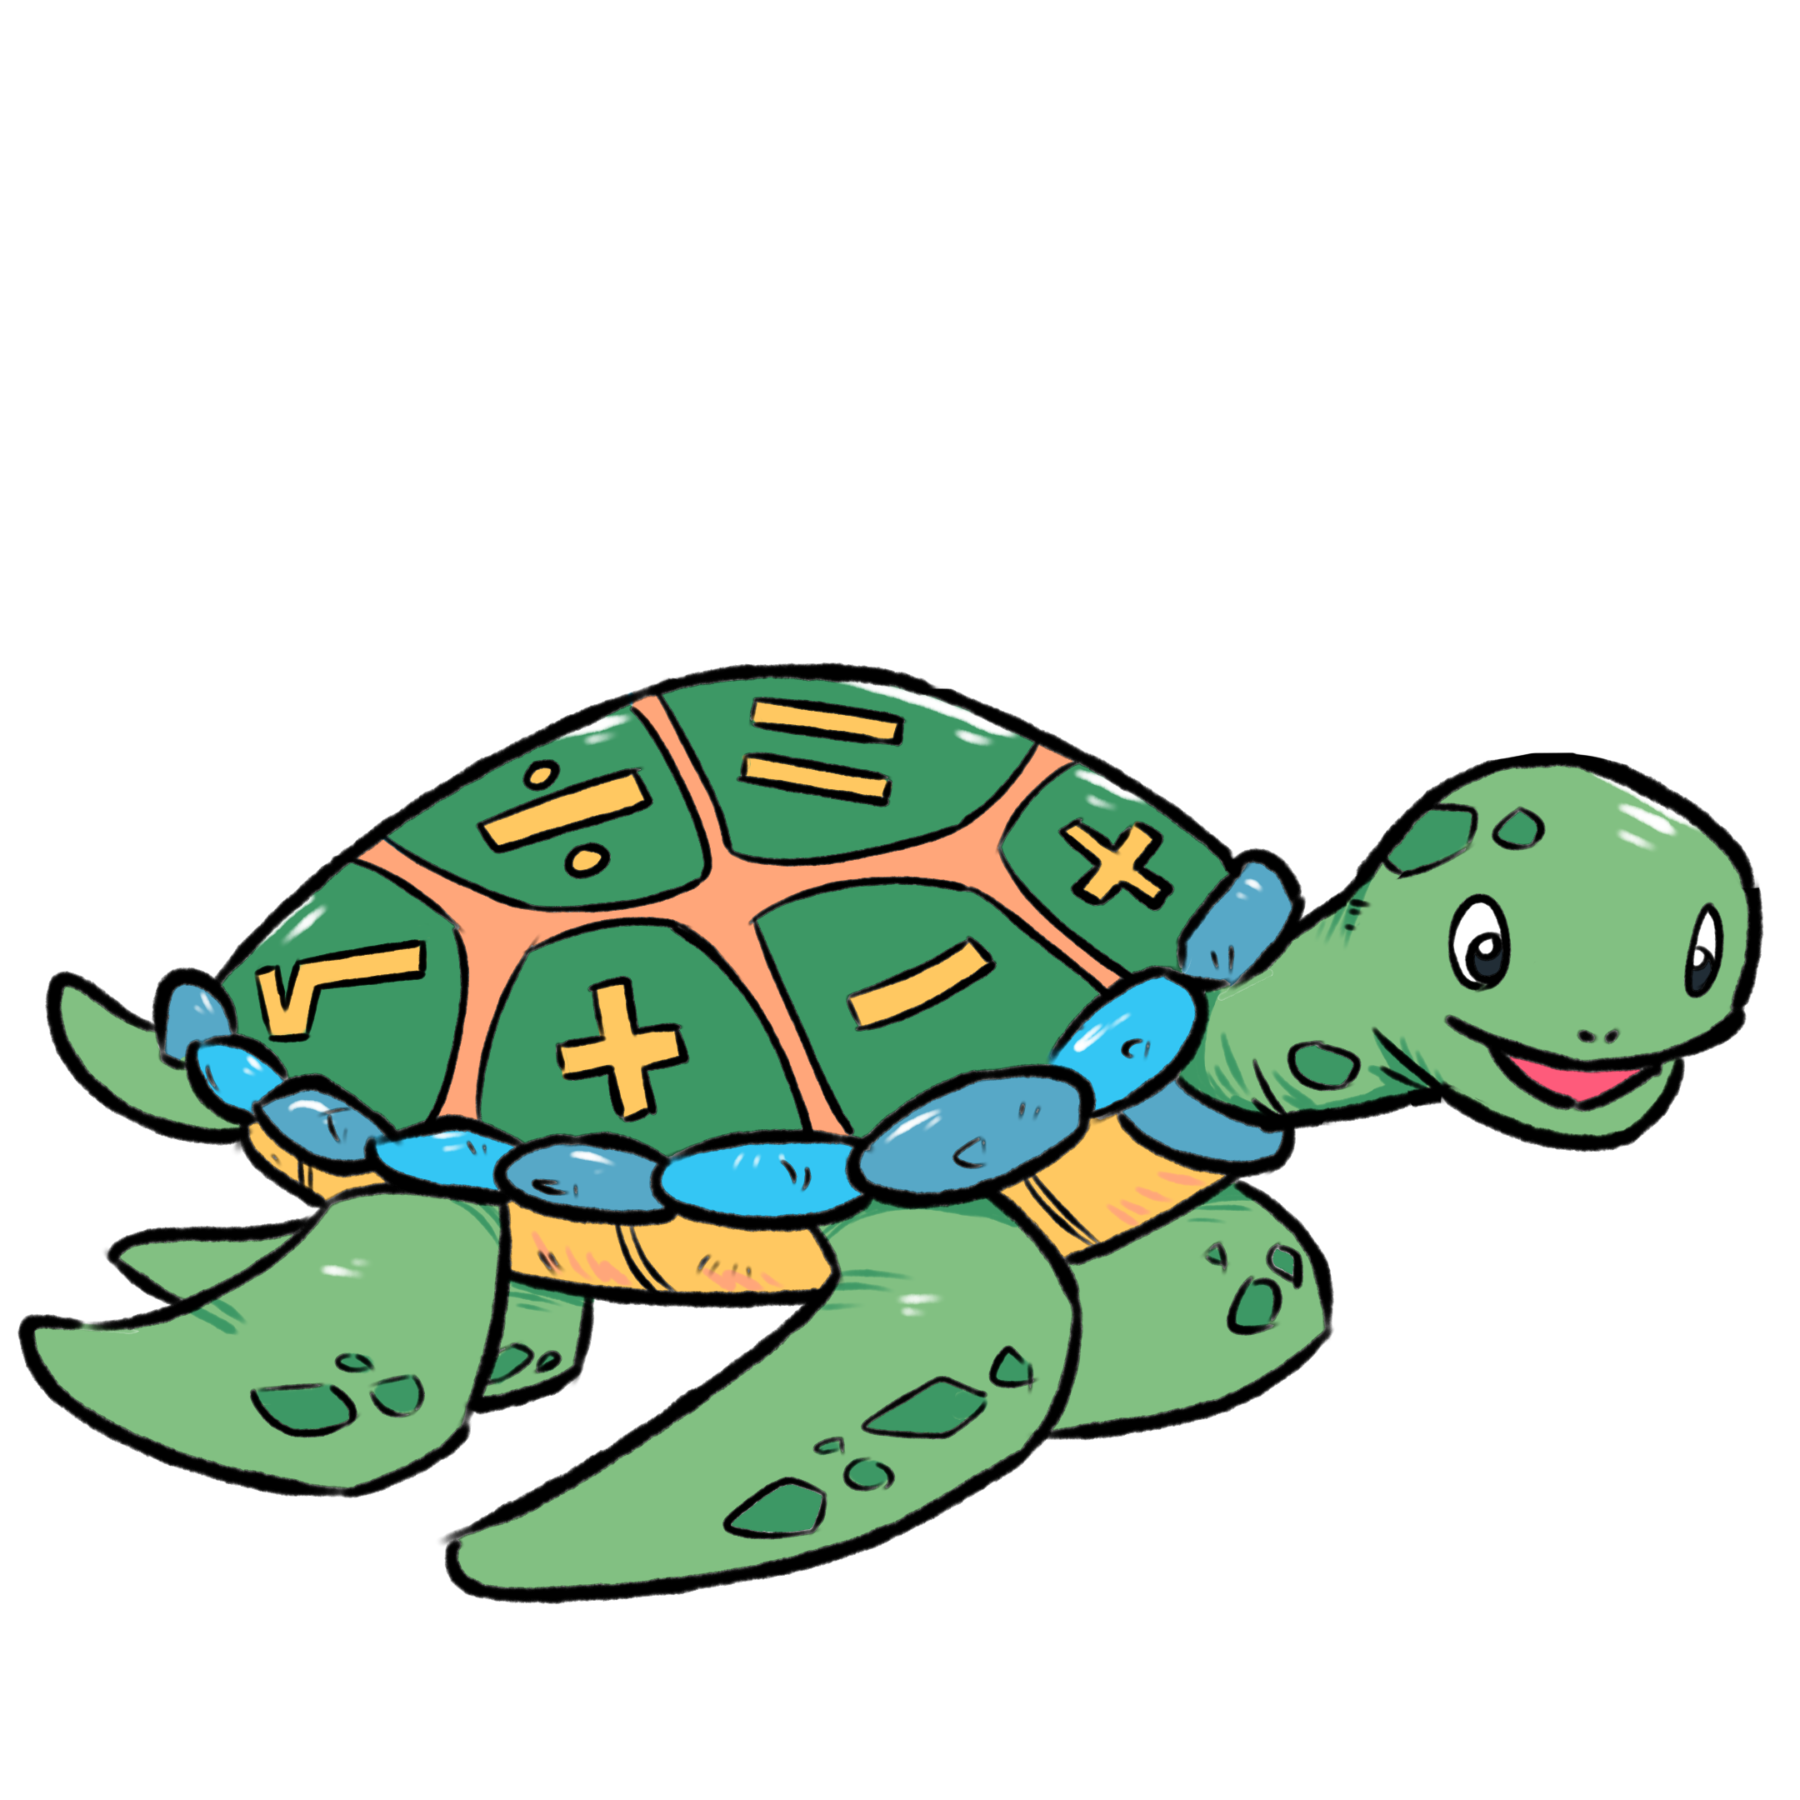 animals social emotional learning SEL global education thoughtful turtle belonging bee question quetzal bird empathy elephant mindful moo cow patient panda